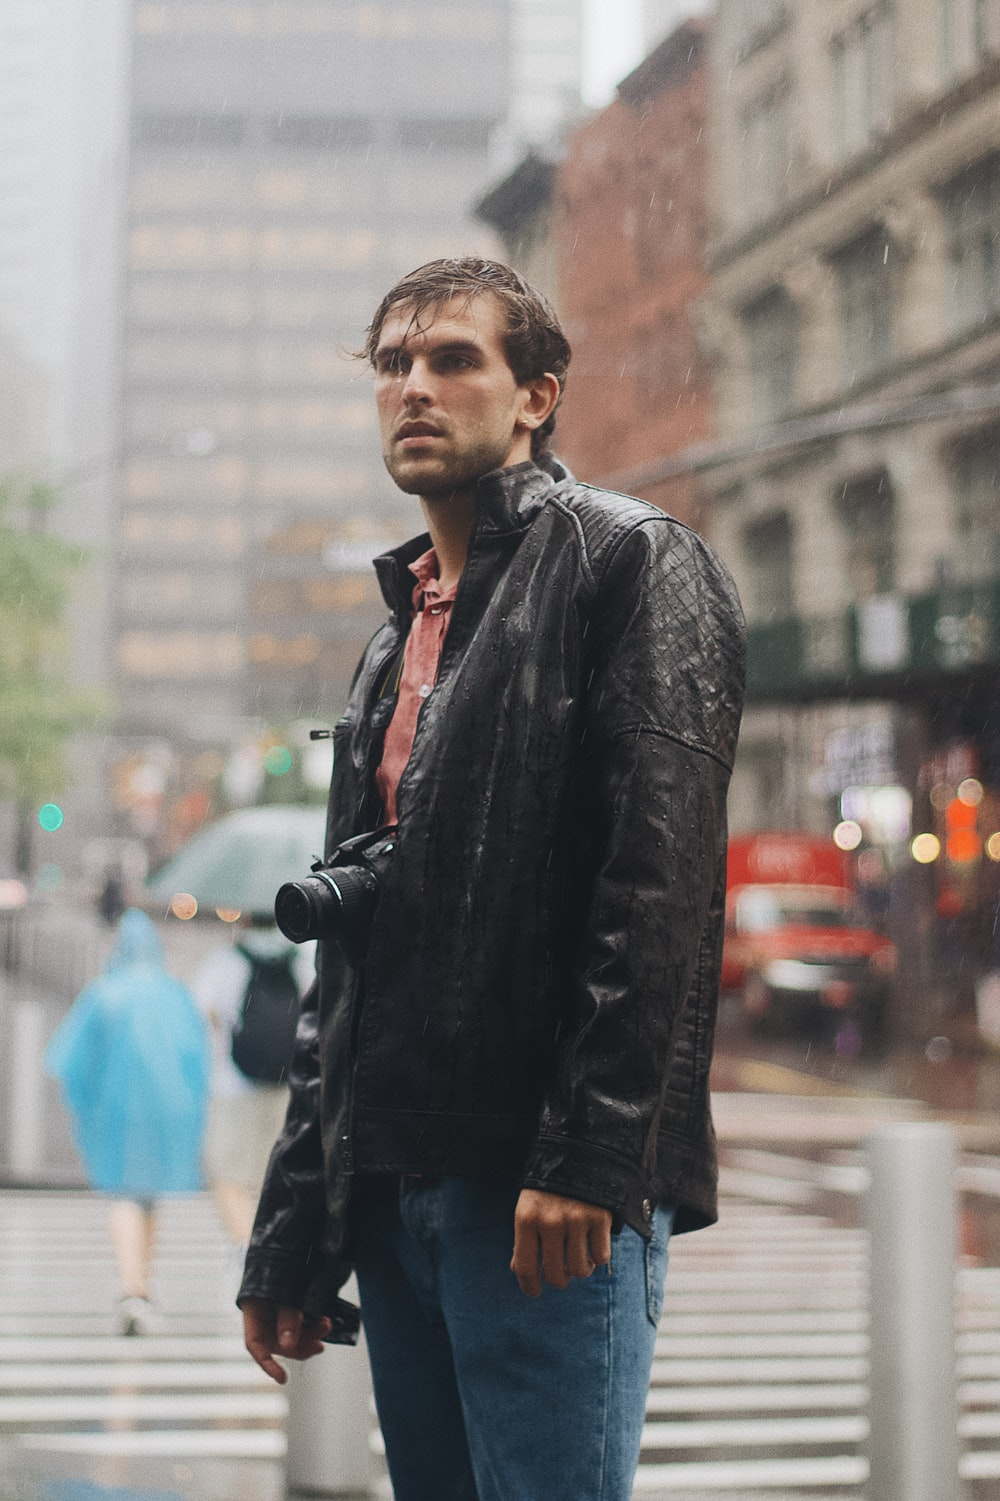 man in black leather jacket standing on street during daytime